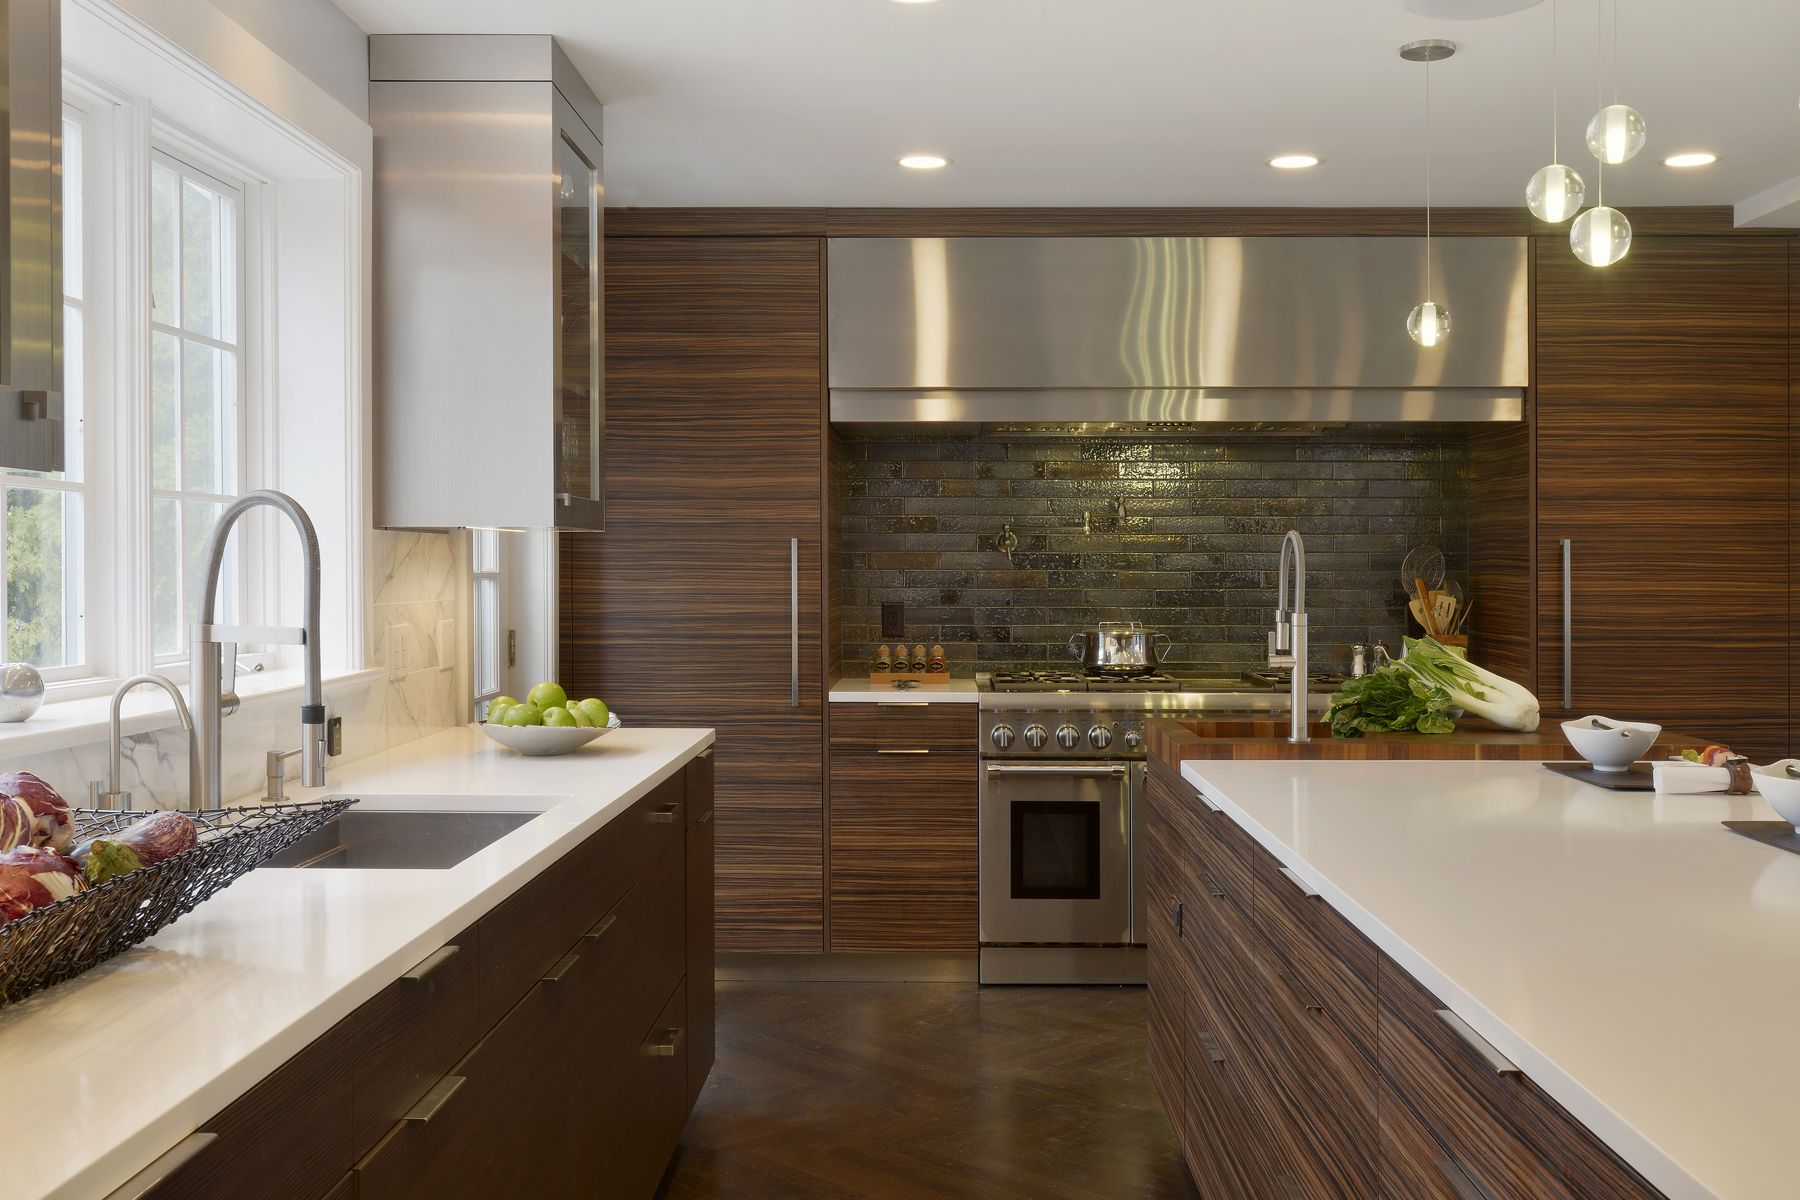 The Large Hearth With Textural Backsplash Is A Focal Point Of This Contemporary Kitchen Contemporary Kitchen Modern Kitchen Design Contemporary Kitchen Design